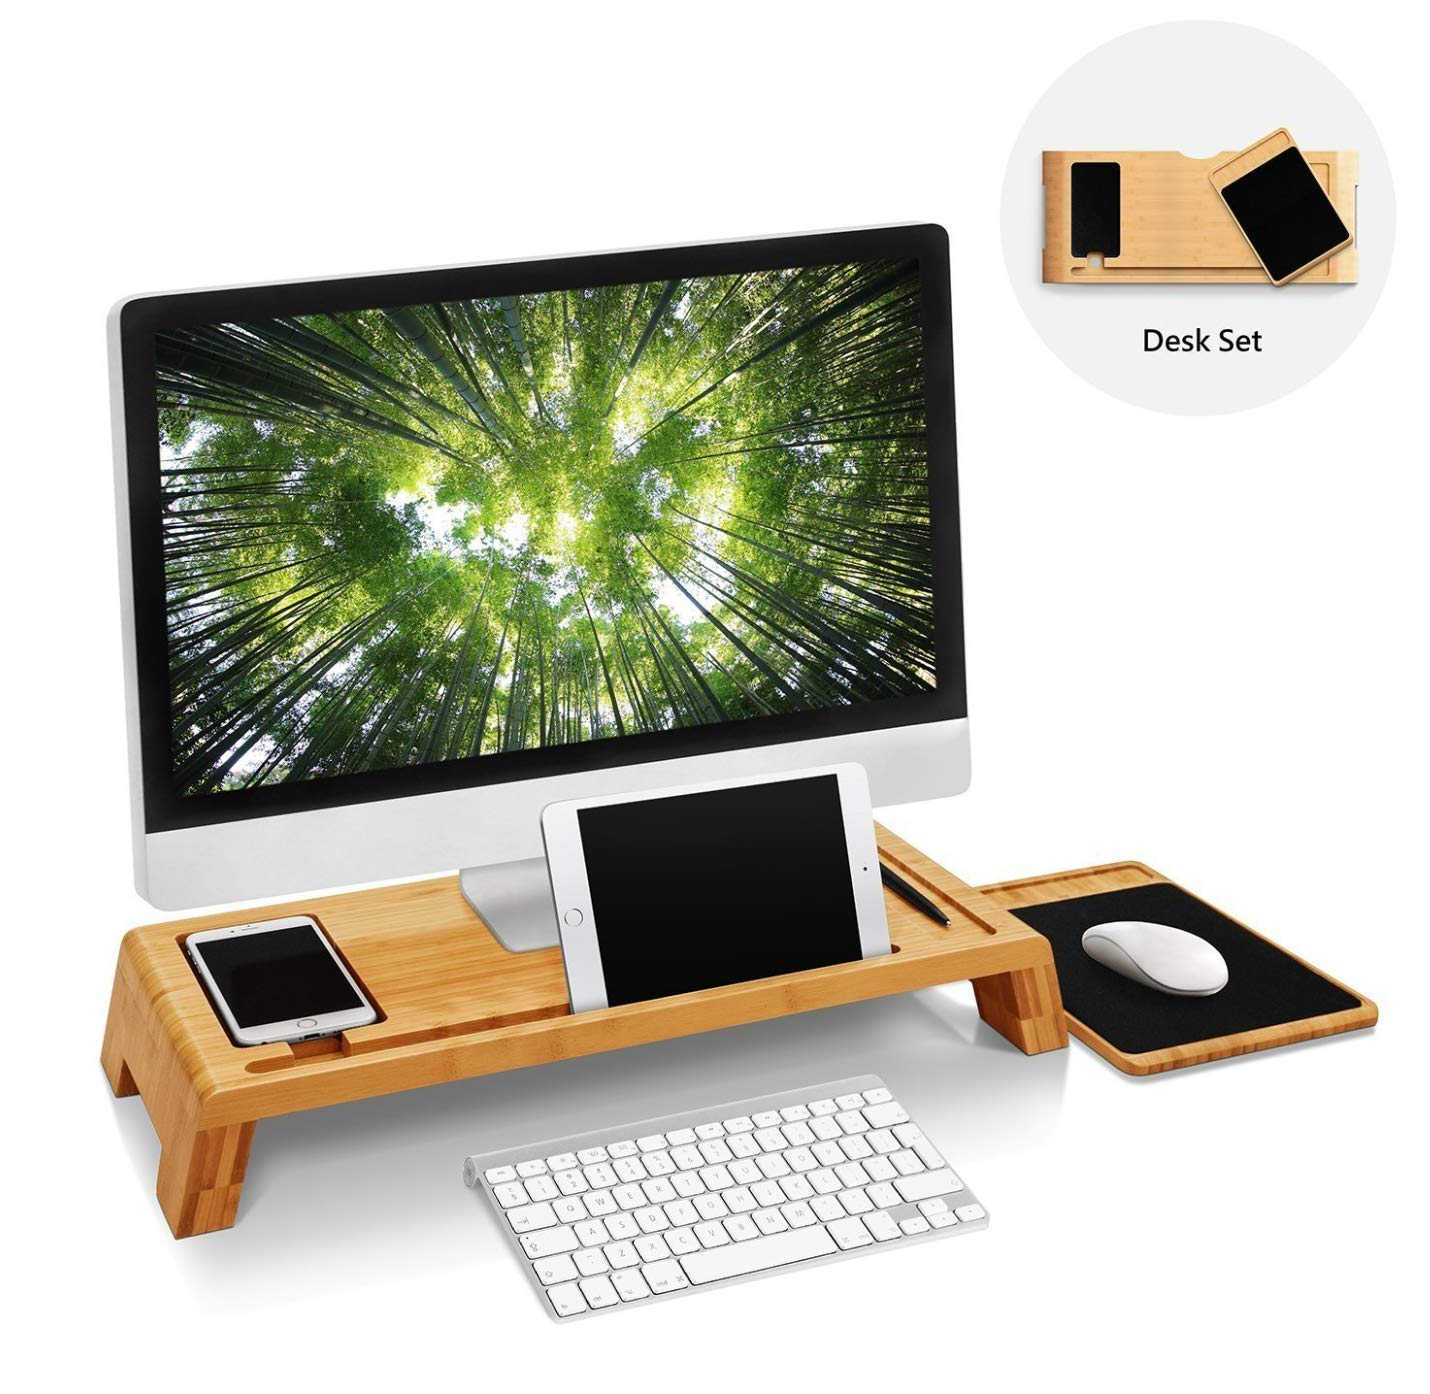 Bamboo Wood Monitor Stand Computer Riser with Storage Organizer Office Desk Laptop Cellphone TV Printer Desktop Container Natural